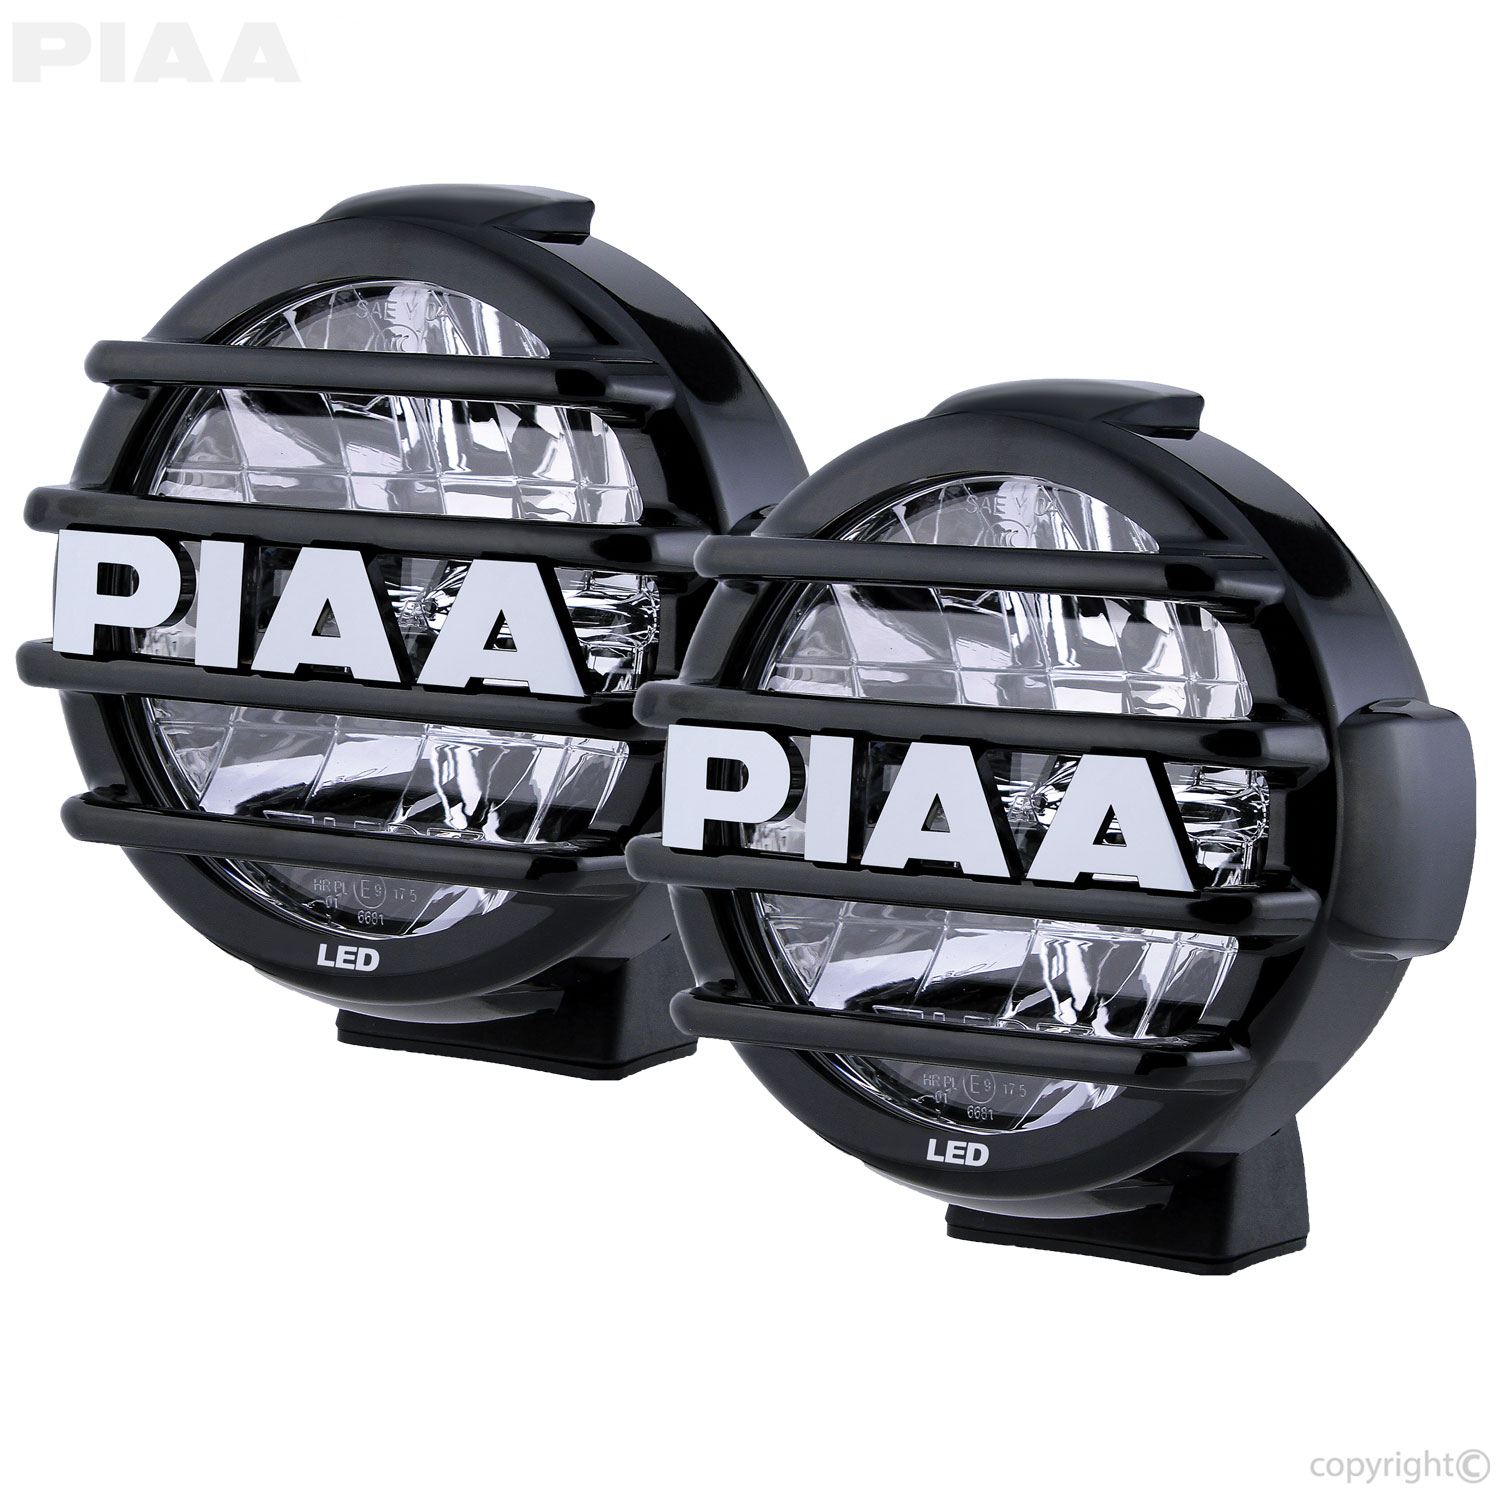 Piaa Atv Utv Lights Driving Fog Light Wiring Diagram Lp570 7 Led Kit Sae Compliant Lamps